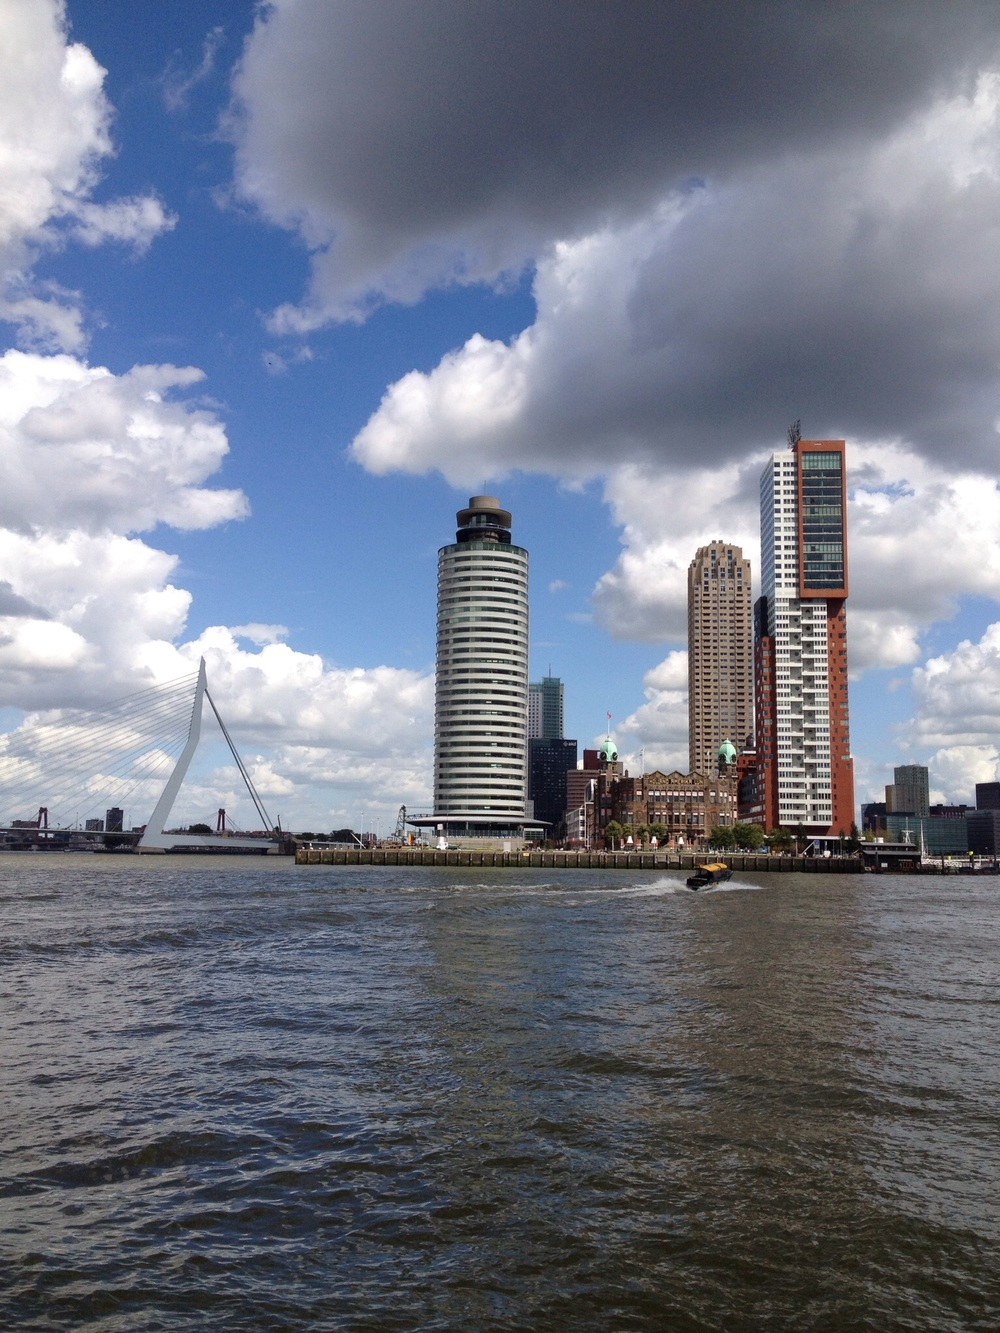 Rotterdam Waterfront  Waiting for the impressive and on time water taxi.